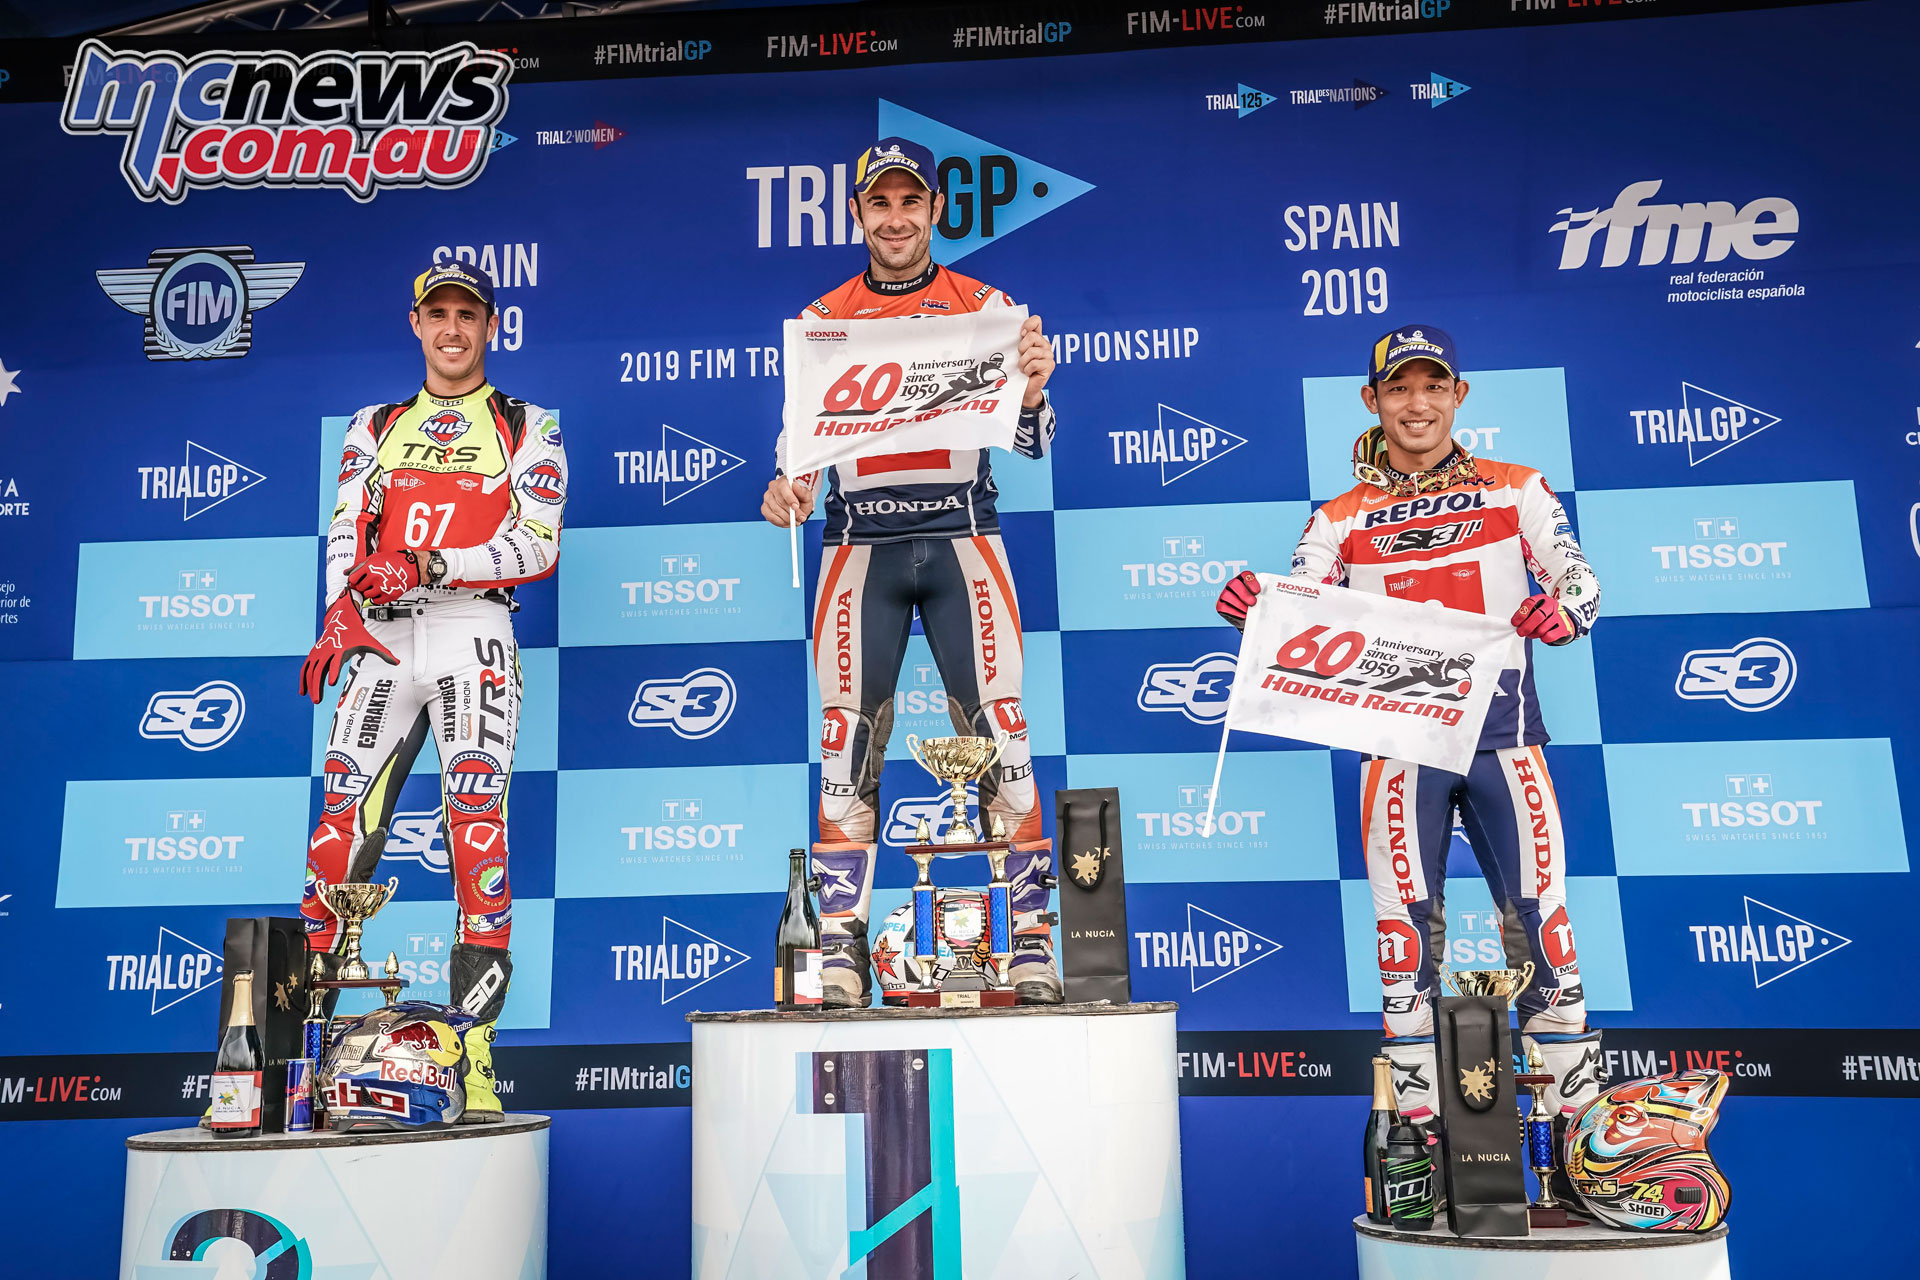 TrialGP r Podium ps